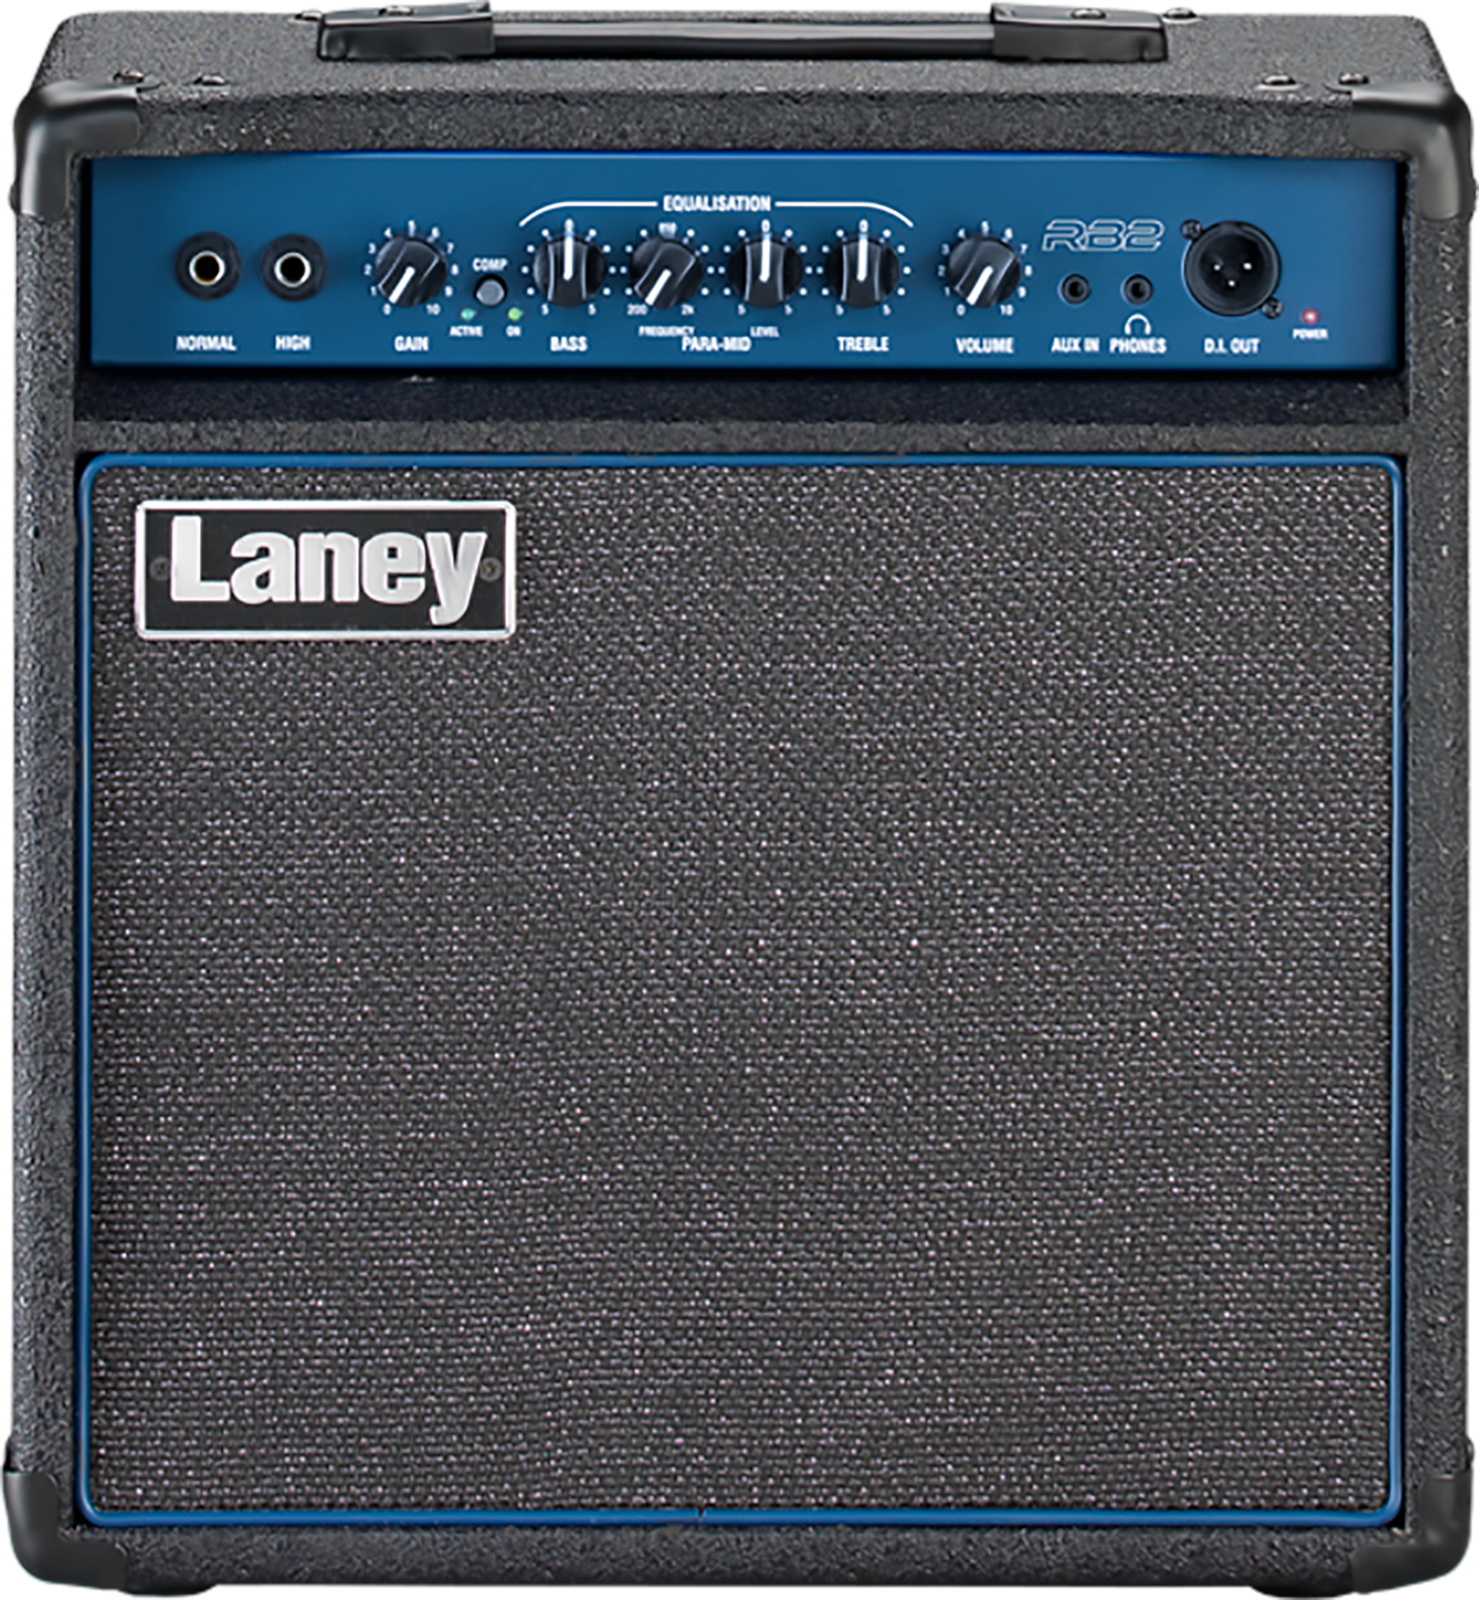 Laney Rb2 30W Bass Combo. 1X10 W/Compressor Black And Blue